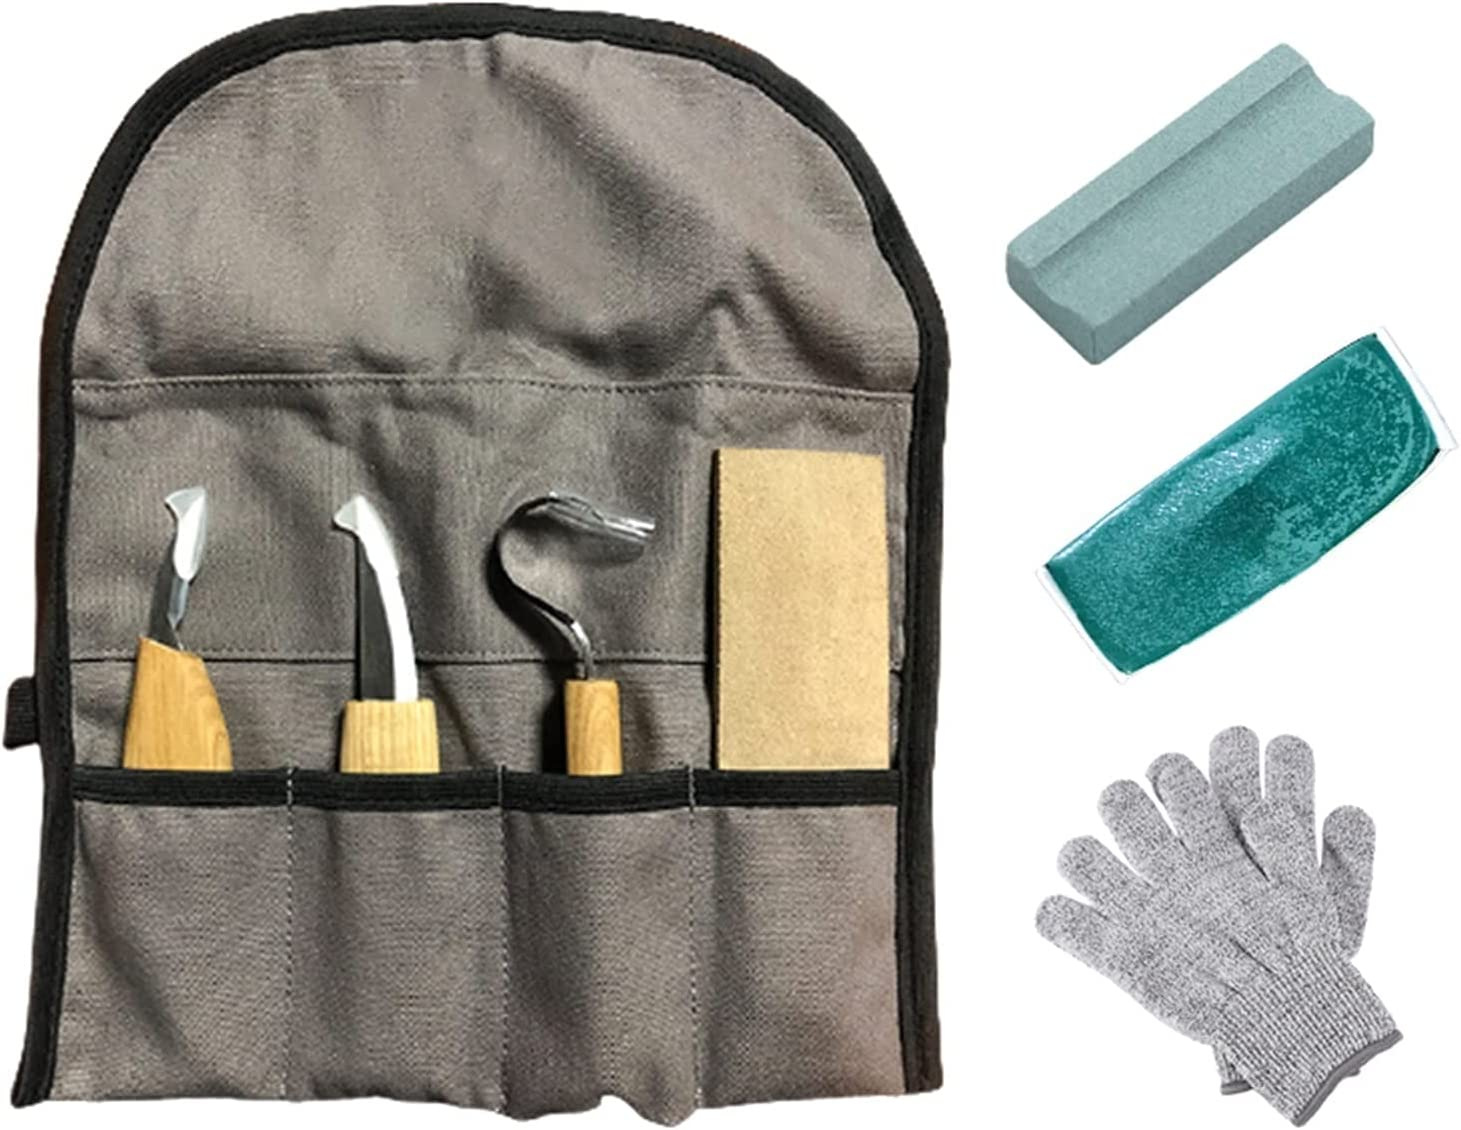 LKXSWZQ Wood Carving Tools Hand Set Daily bargain sale Kit with Minneapolis Mall